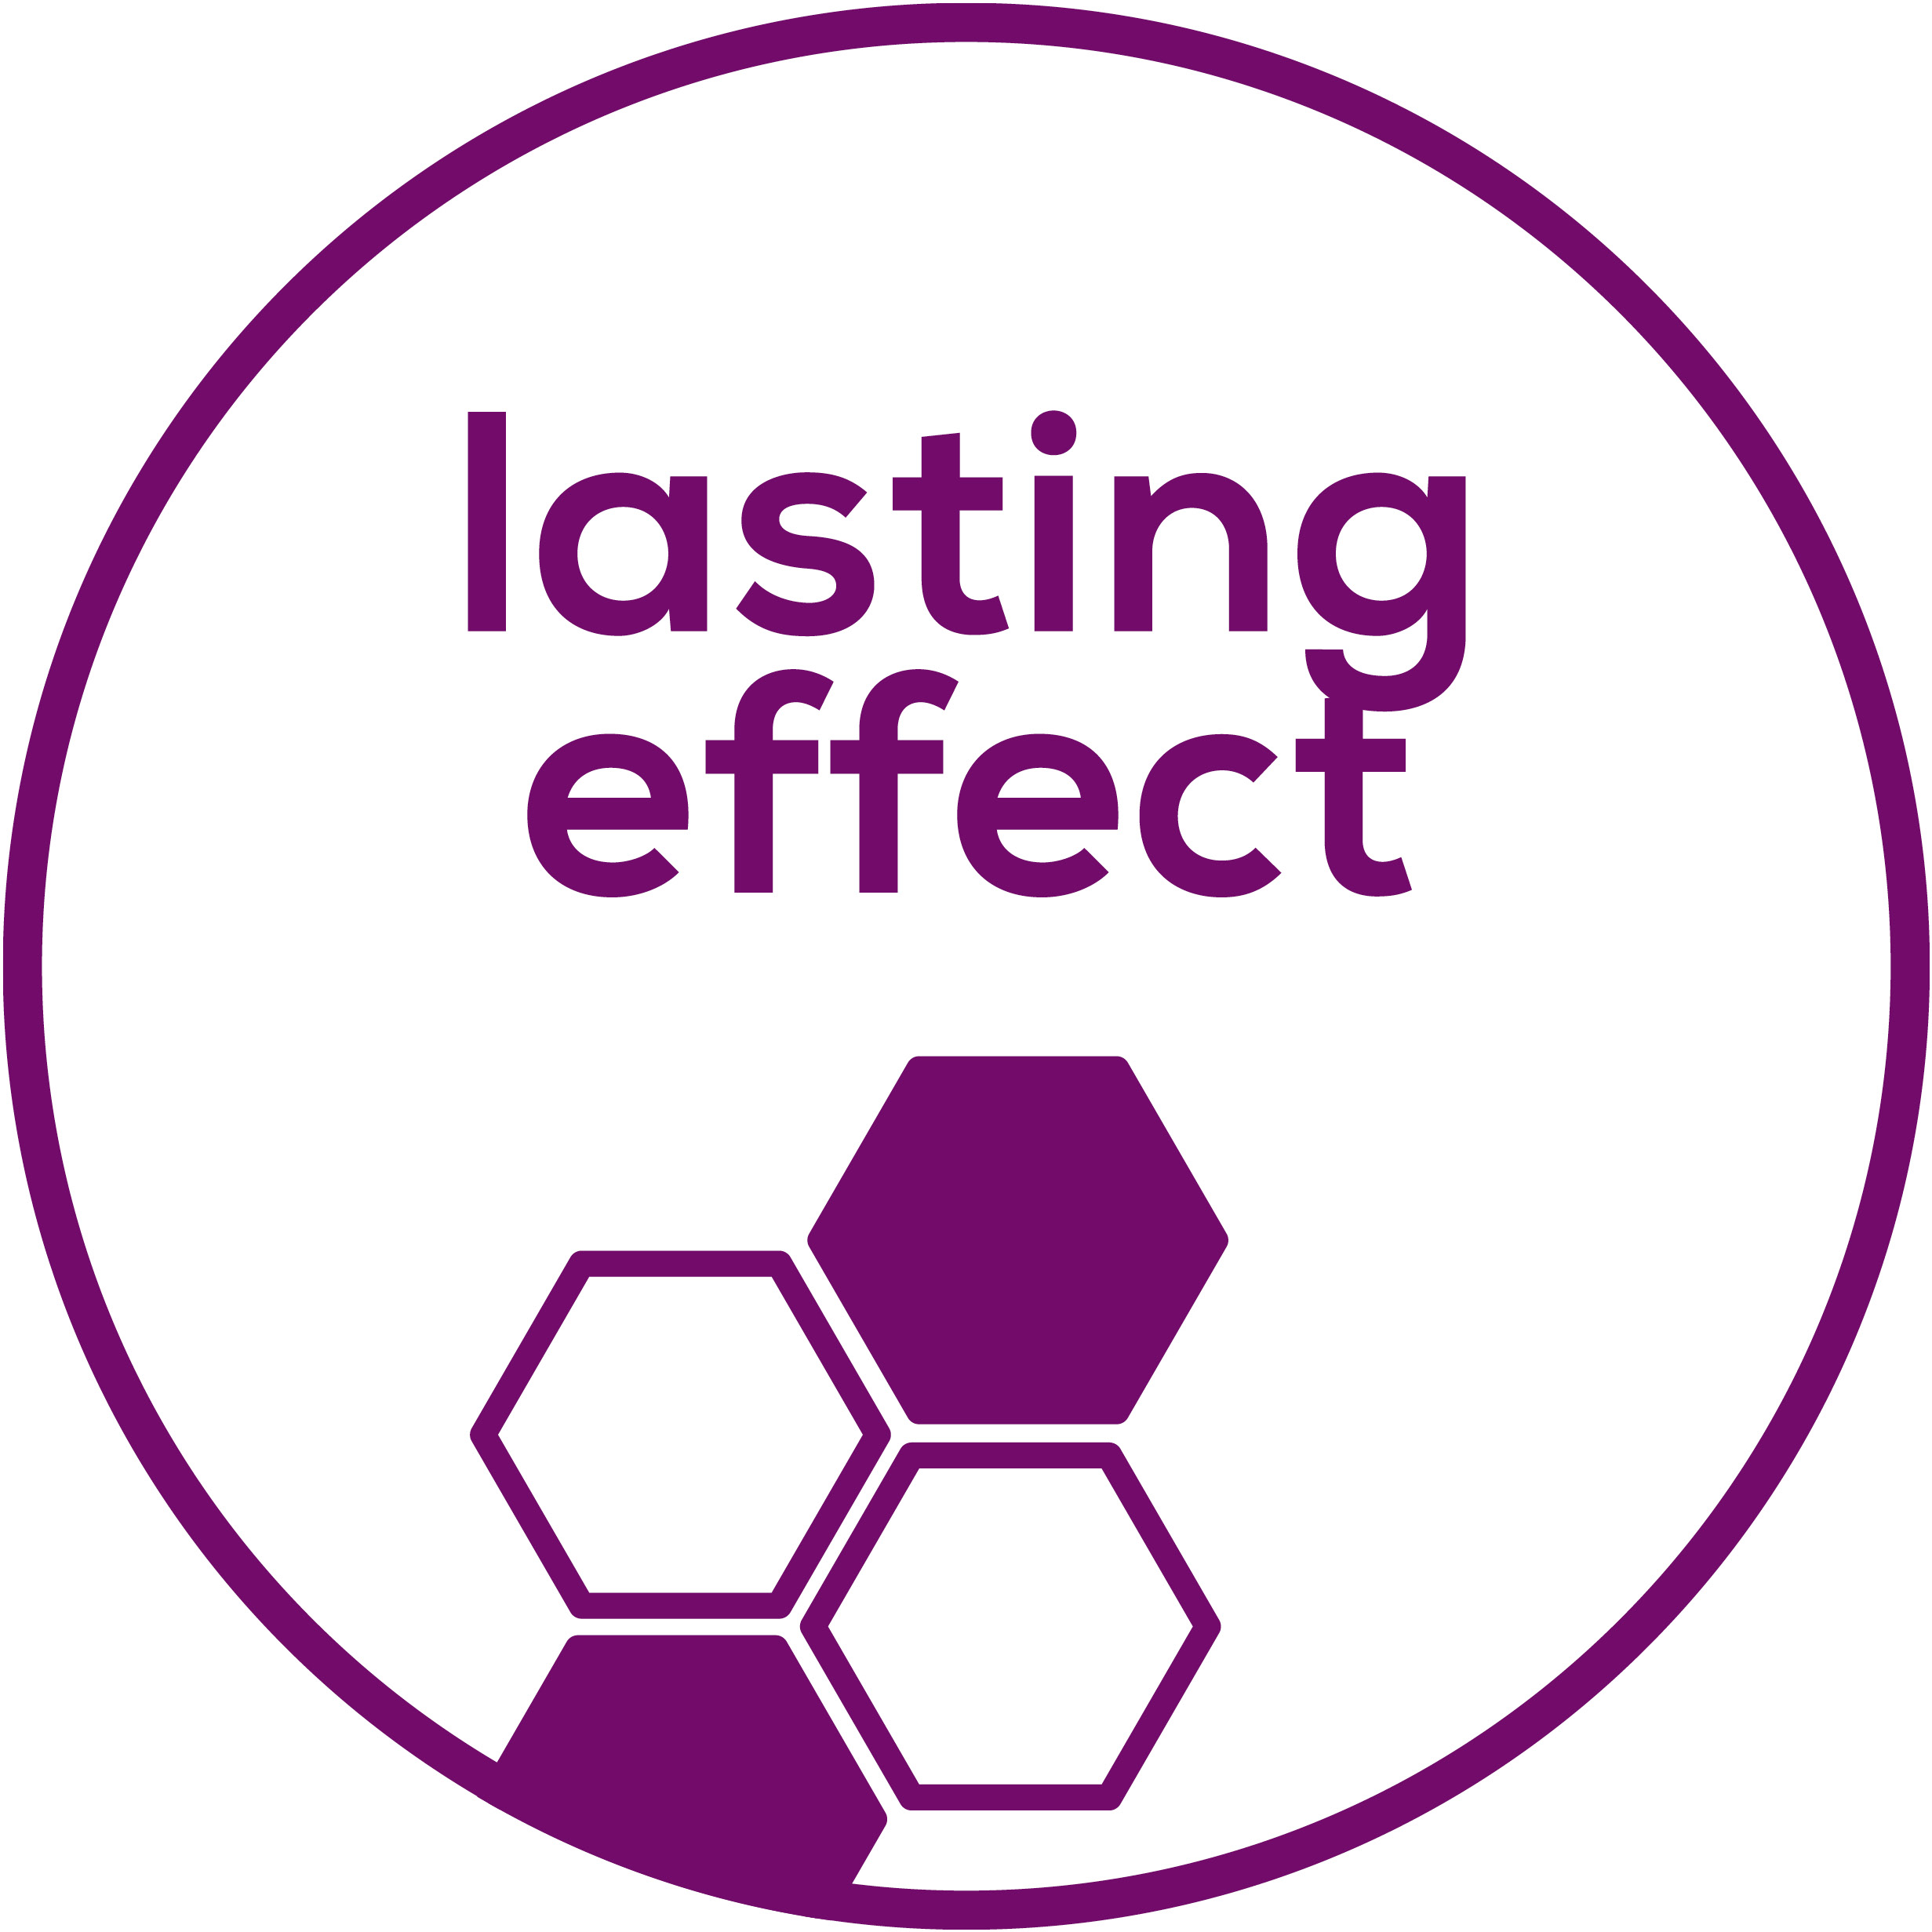 Lasting effect Improves visible unevenness